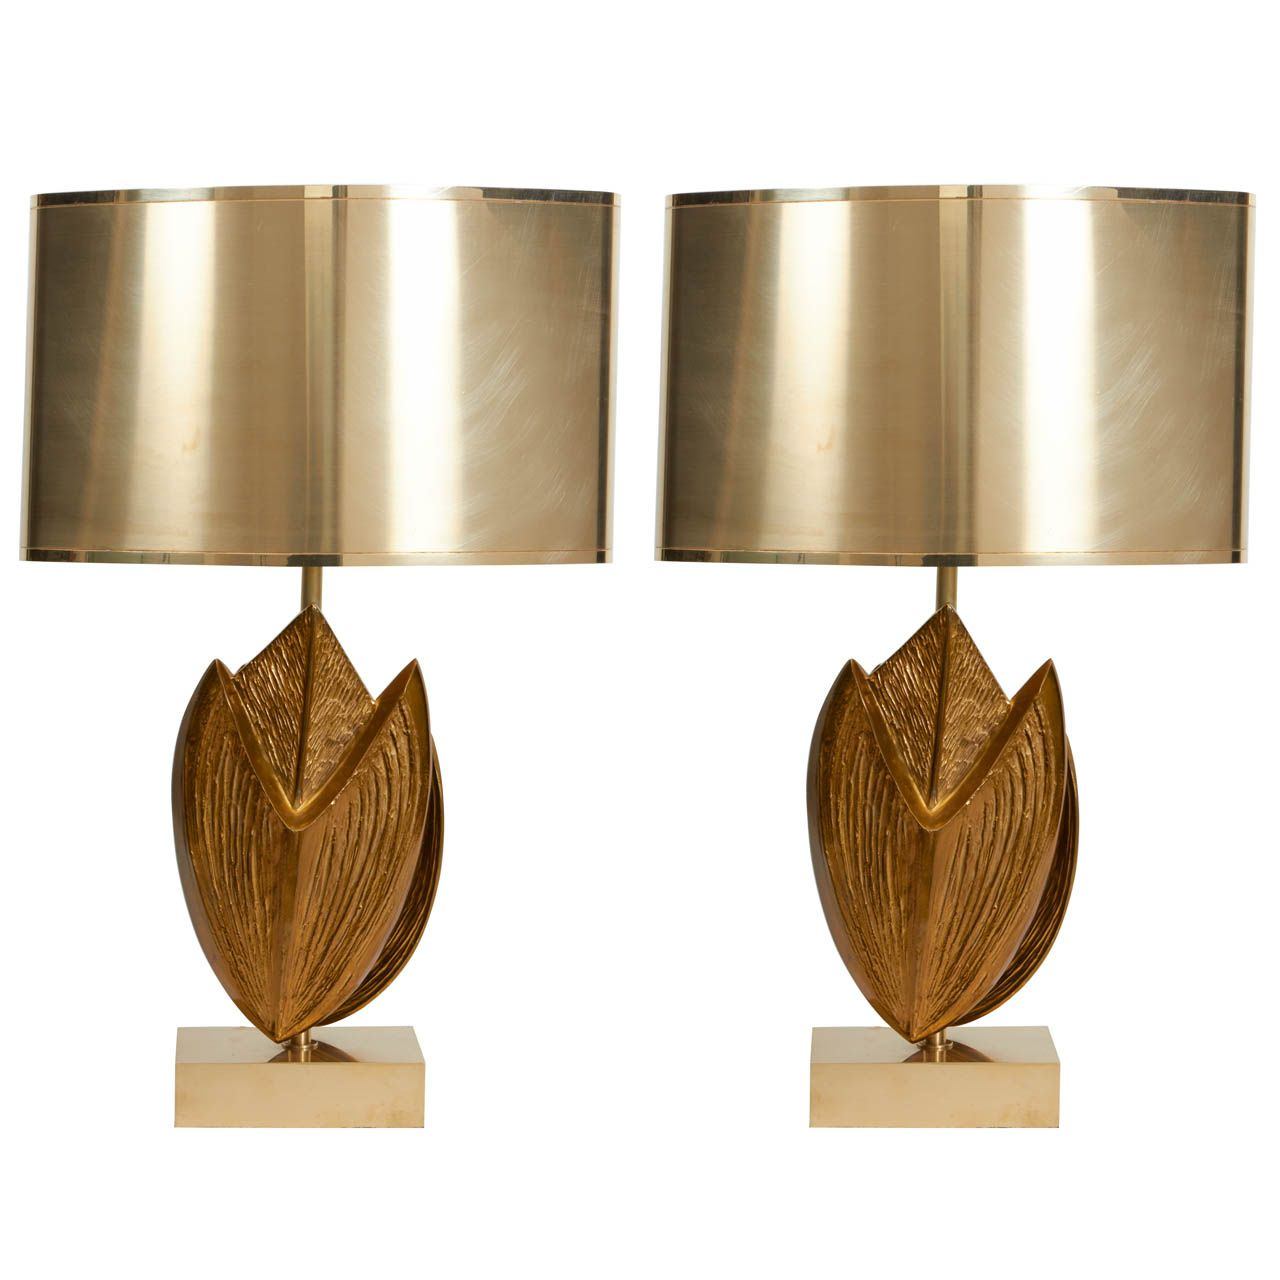 Exceptional Pair of Maison Charles Lamps | Pinterest | Living room ...